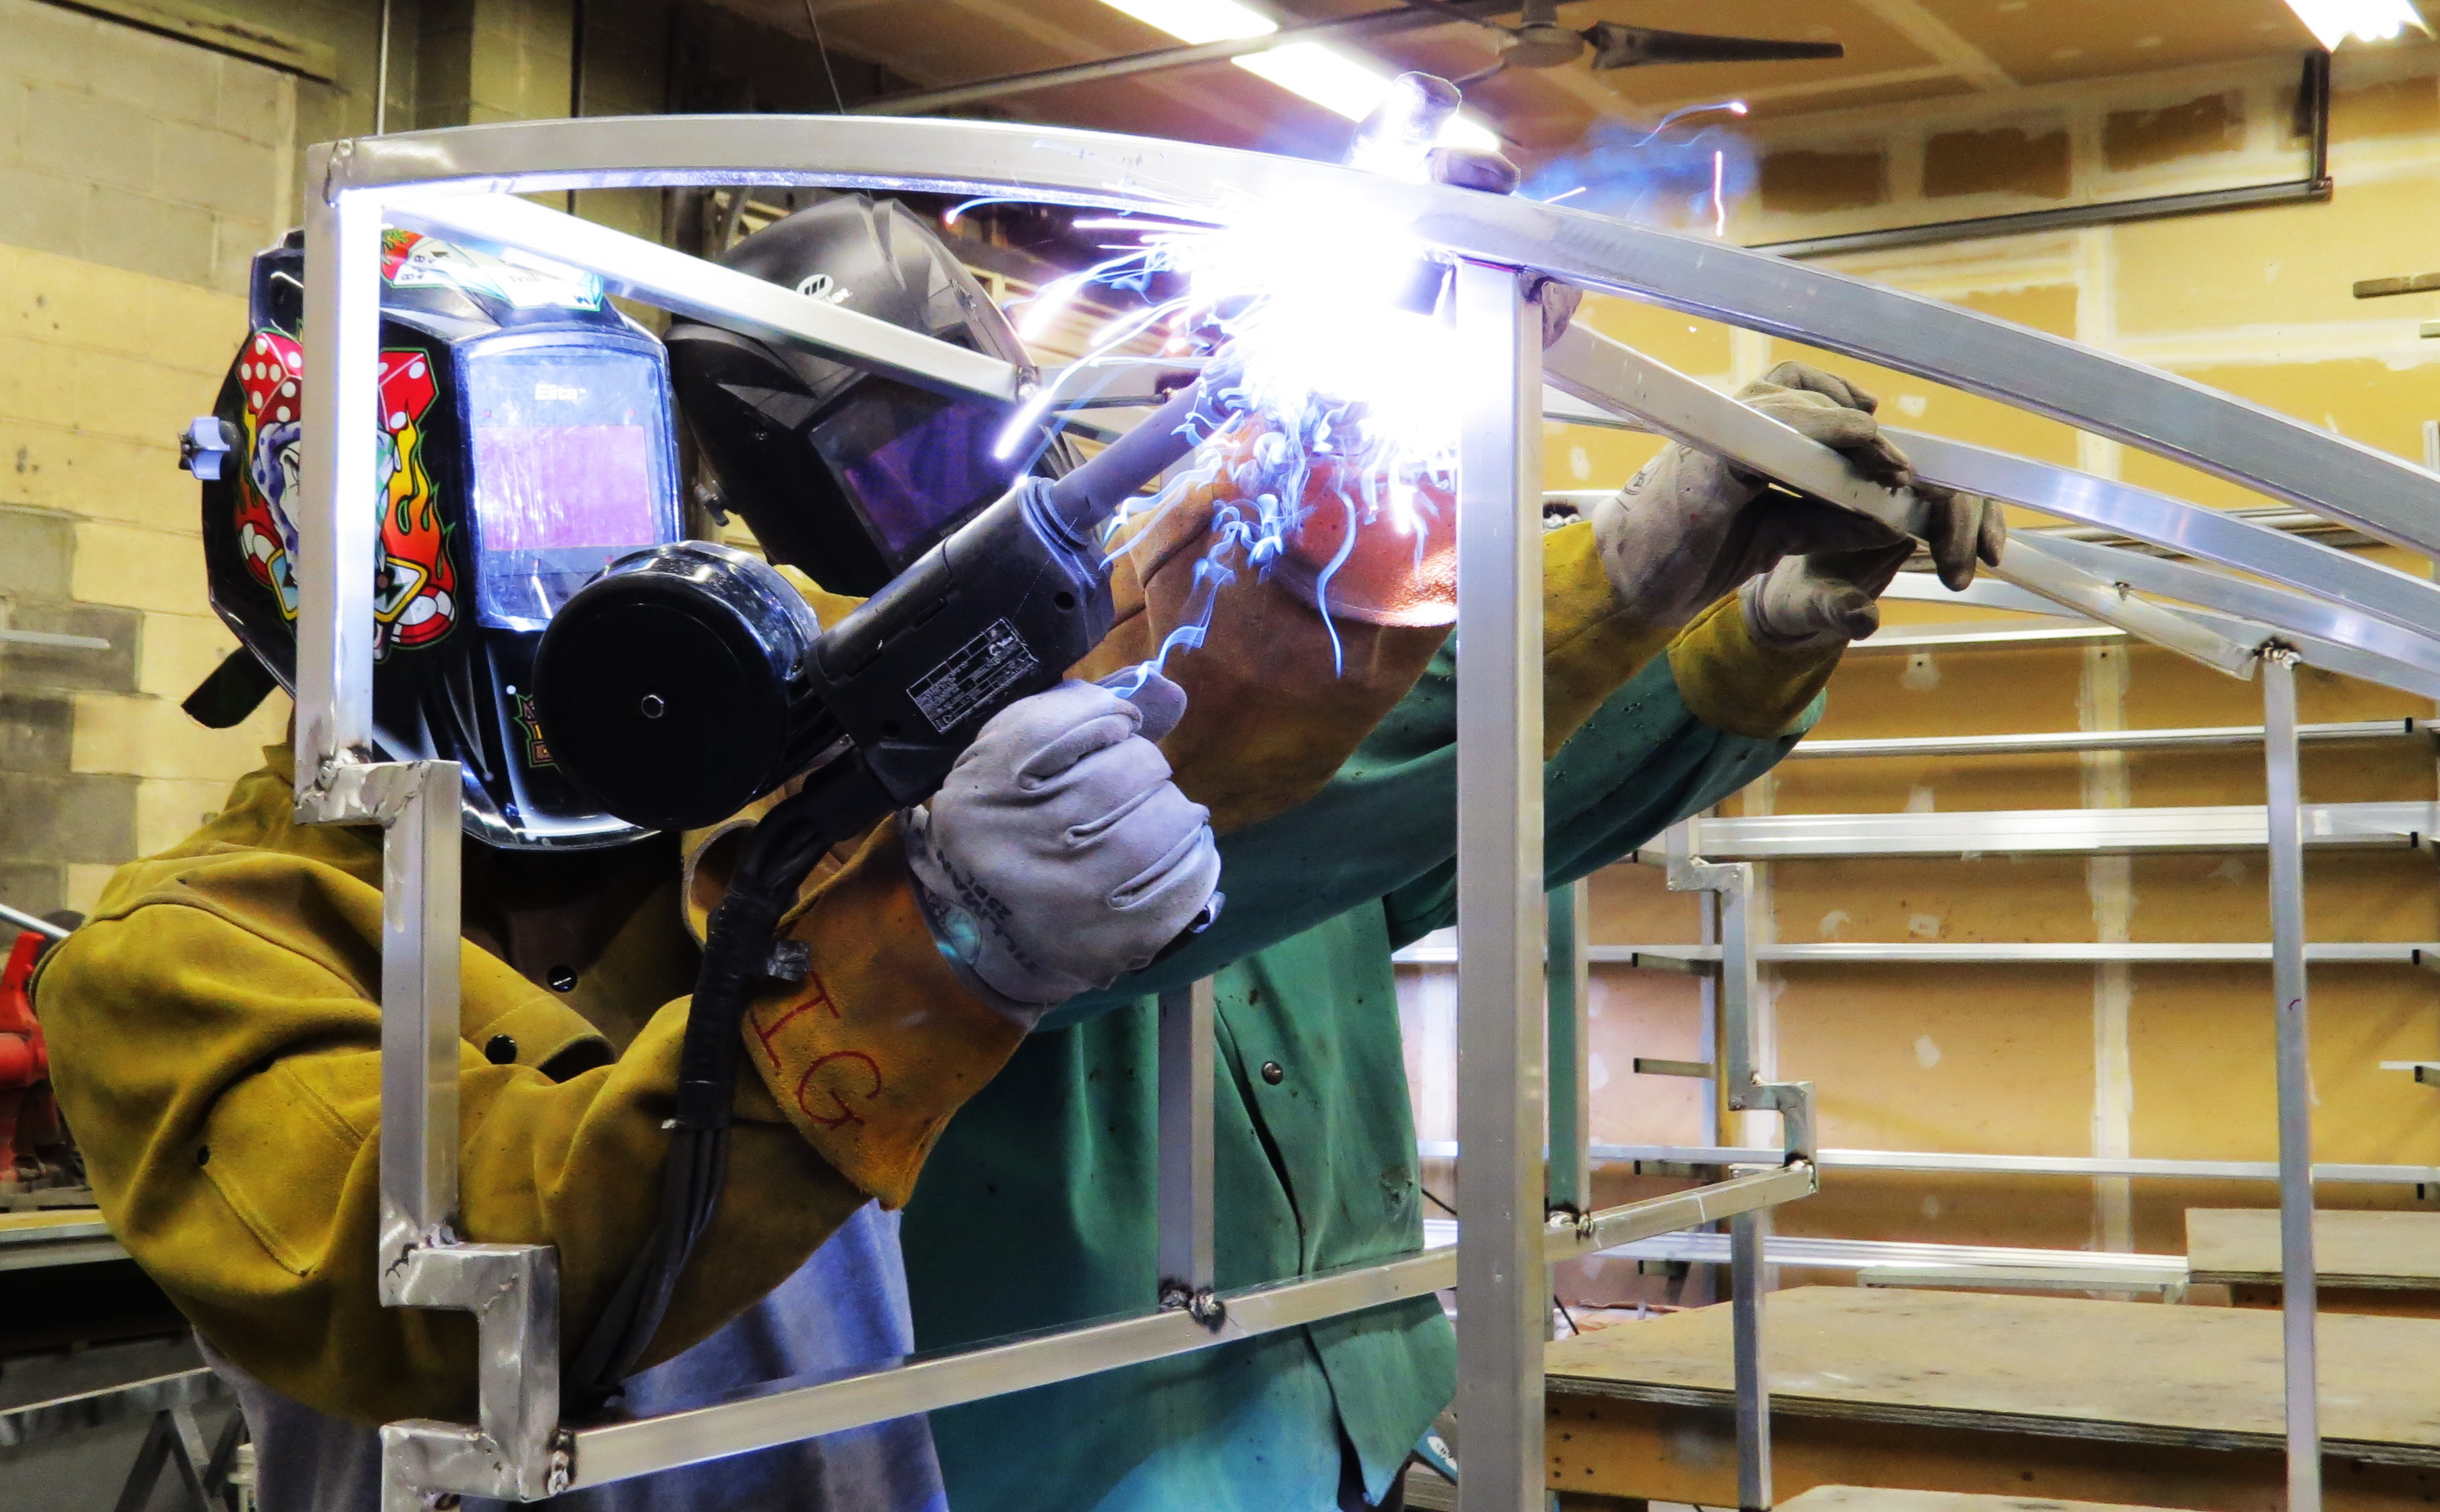 Certified Hoffman Awning  Welders Mig Heffington  and CJ Most awarded awning company, 2015 and 2016!